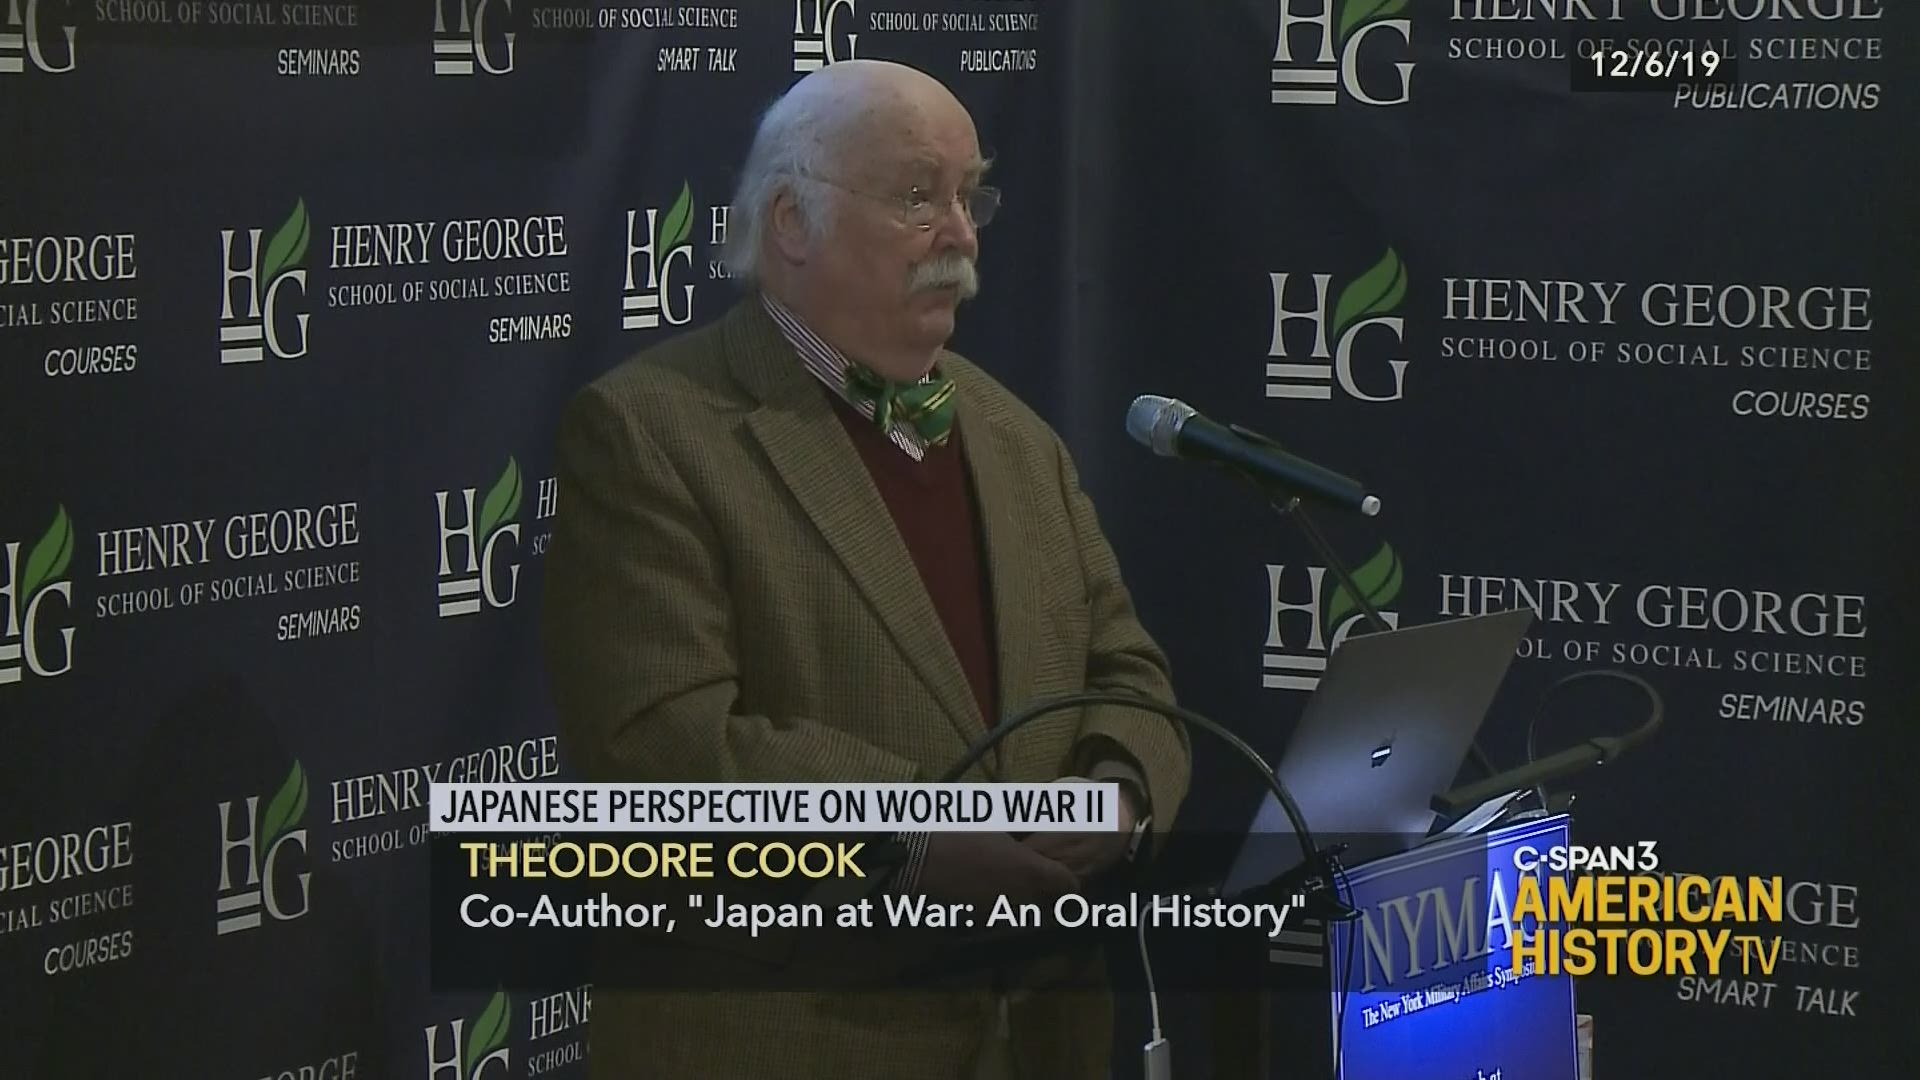 Japanese Perspective On World War Ii C Span Org